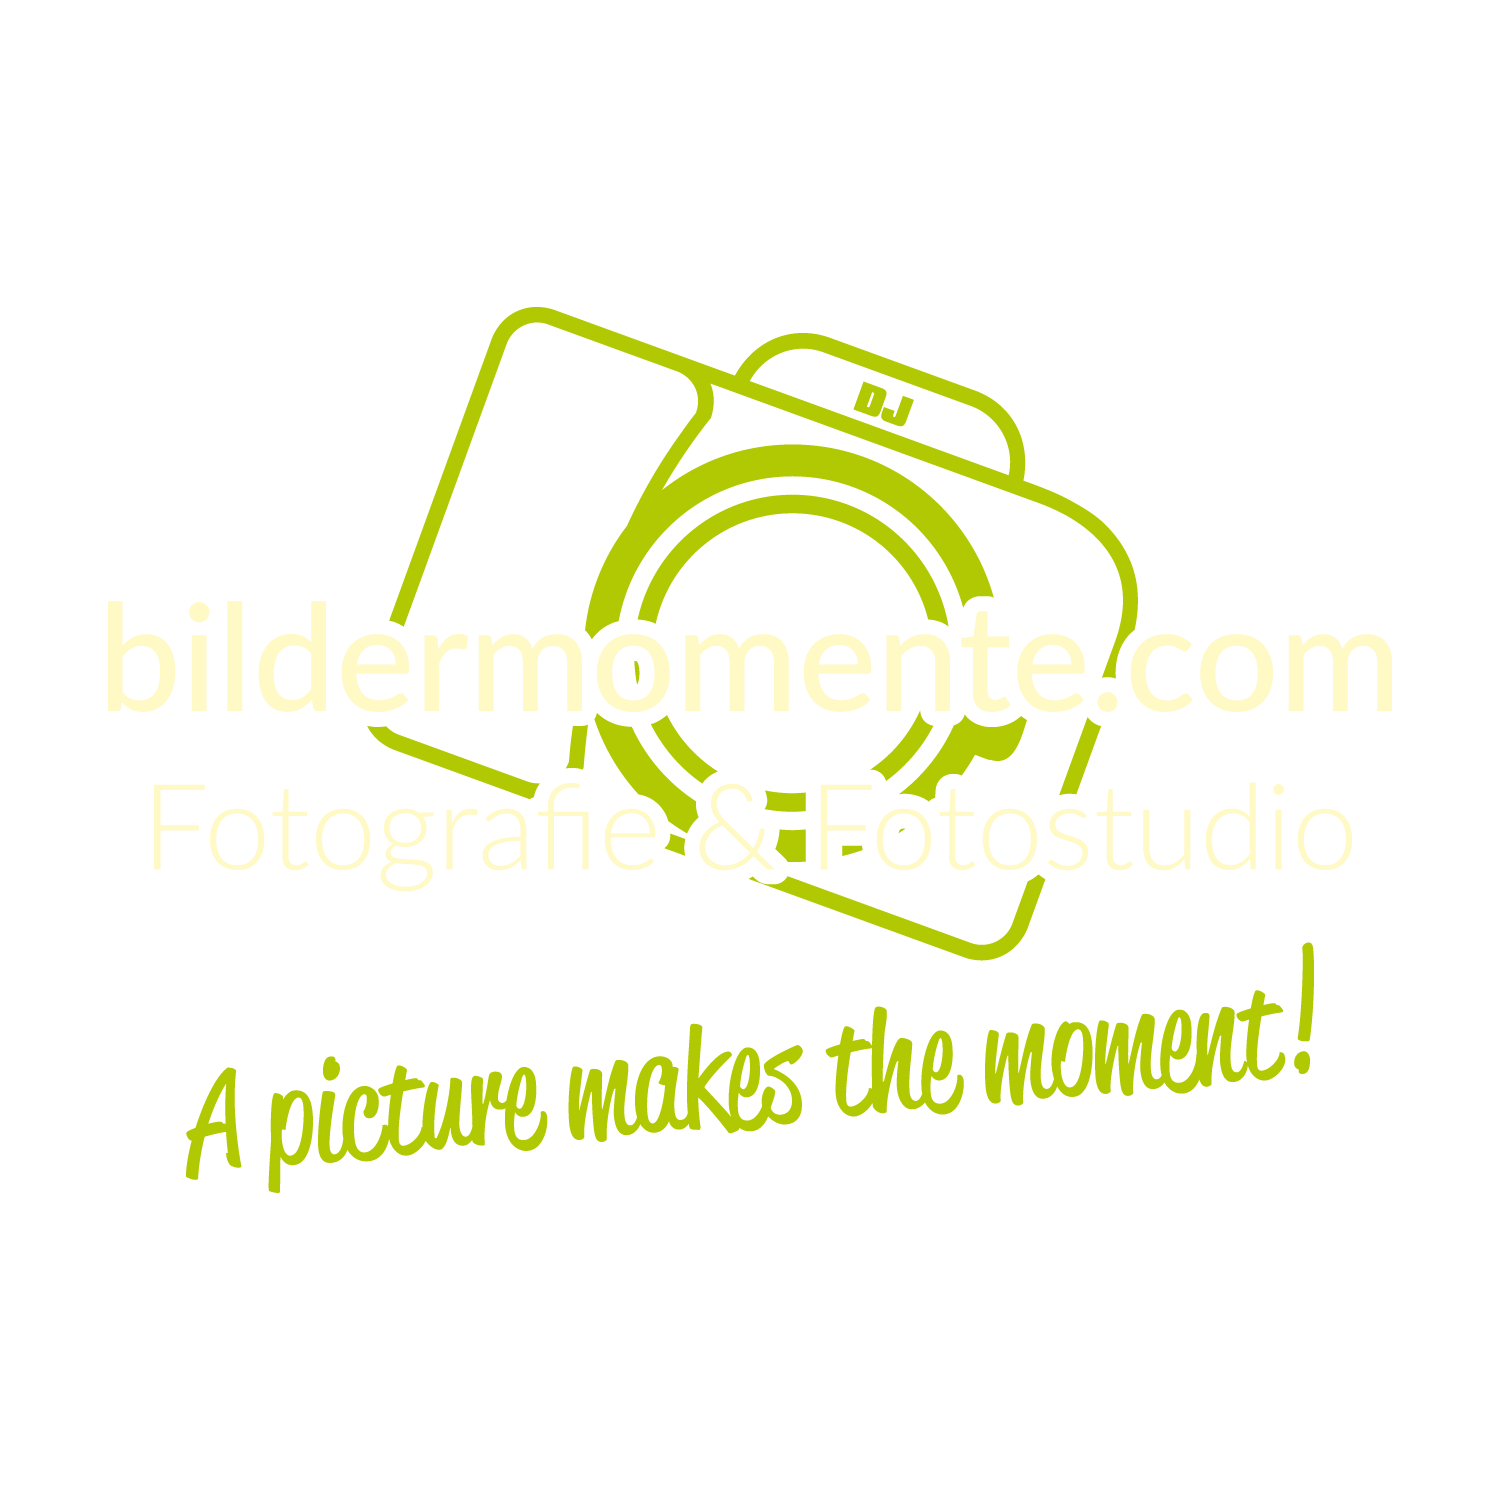 bildermomente.com Fotografie & Fotostudio